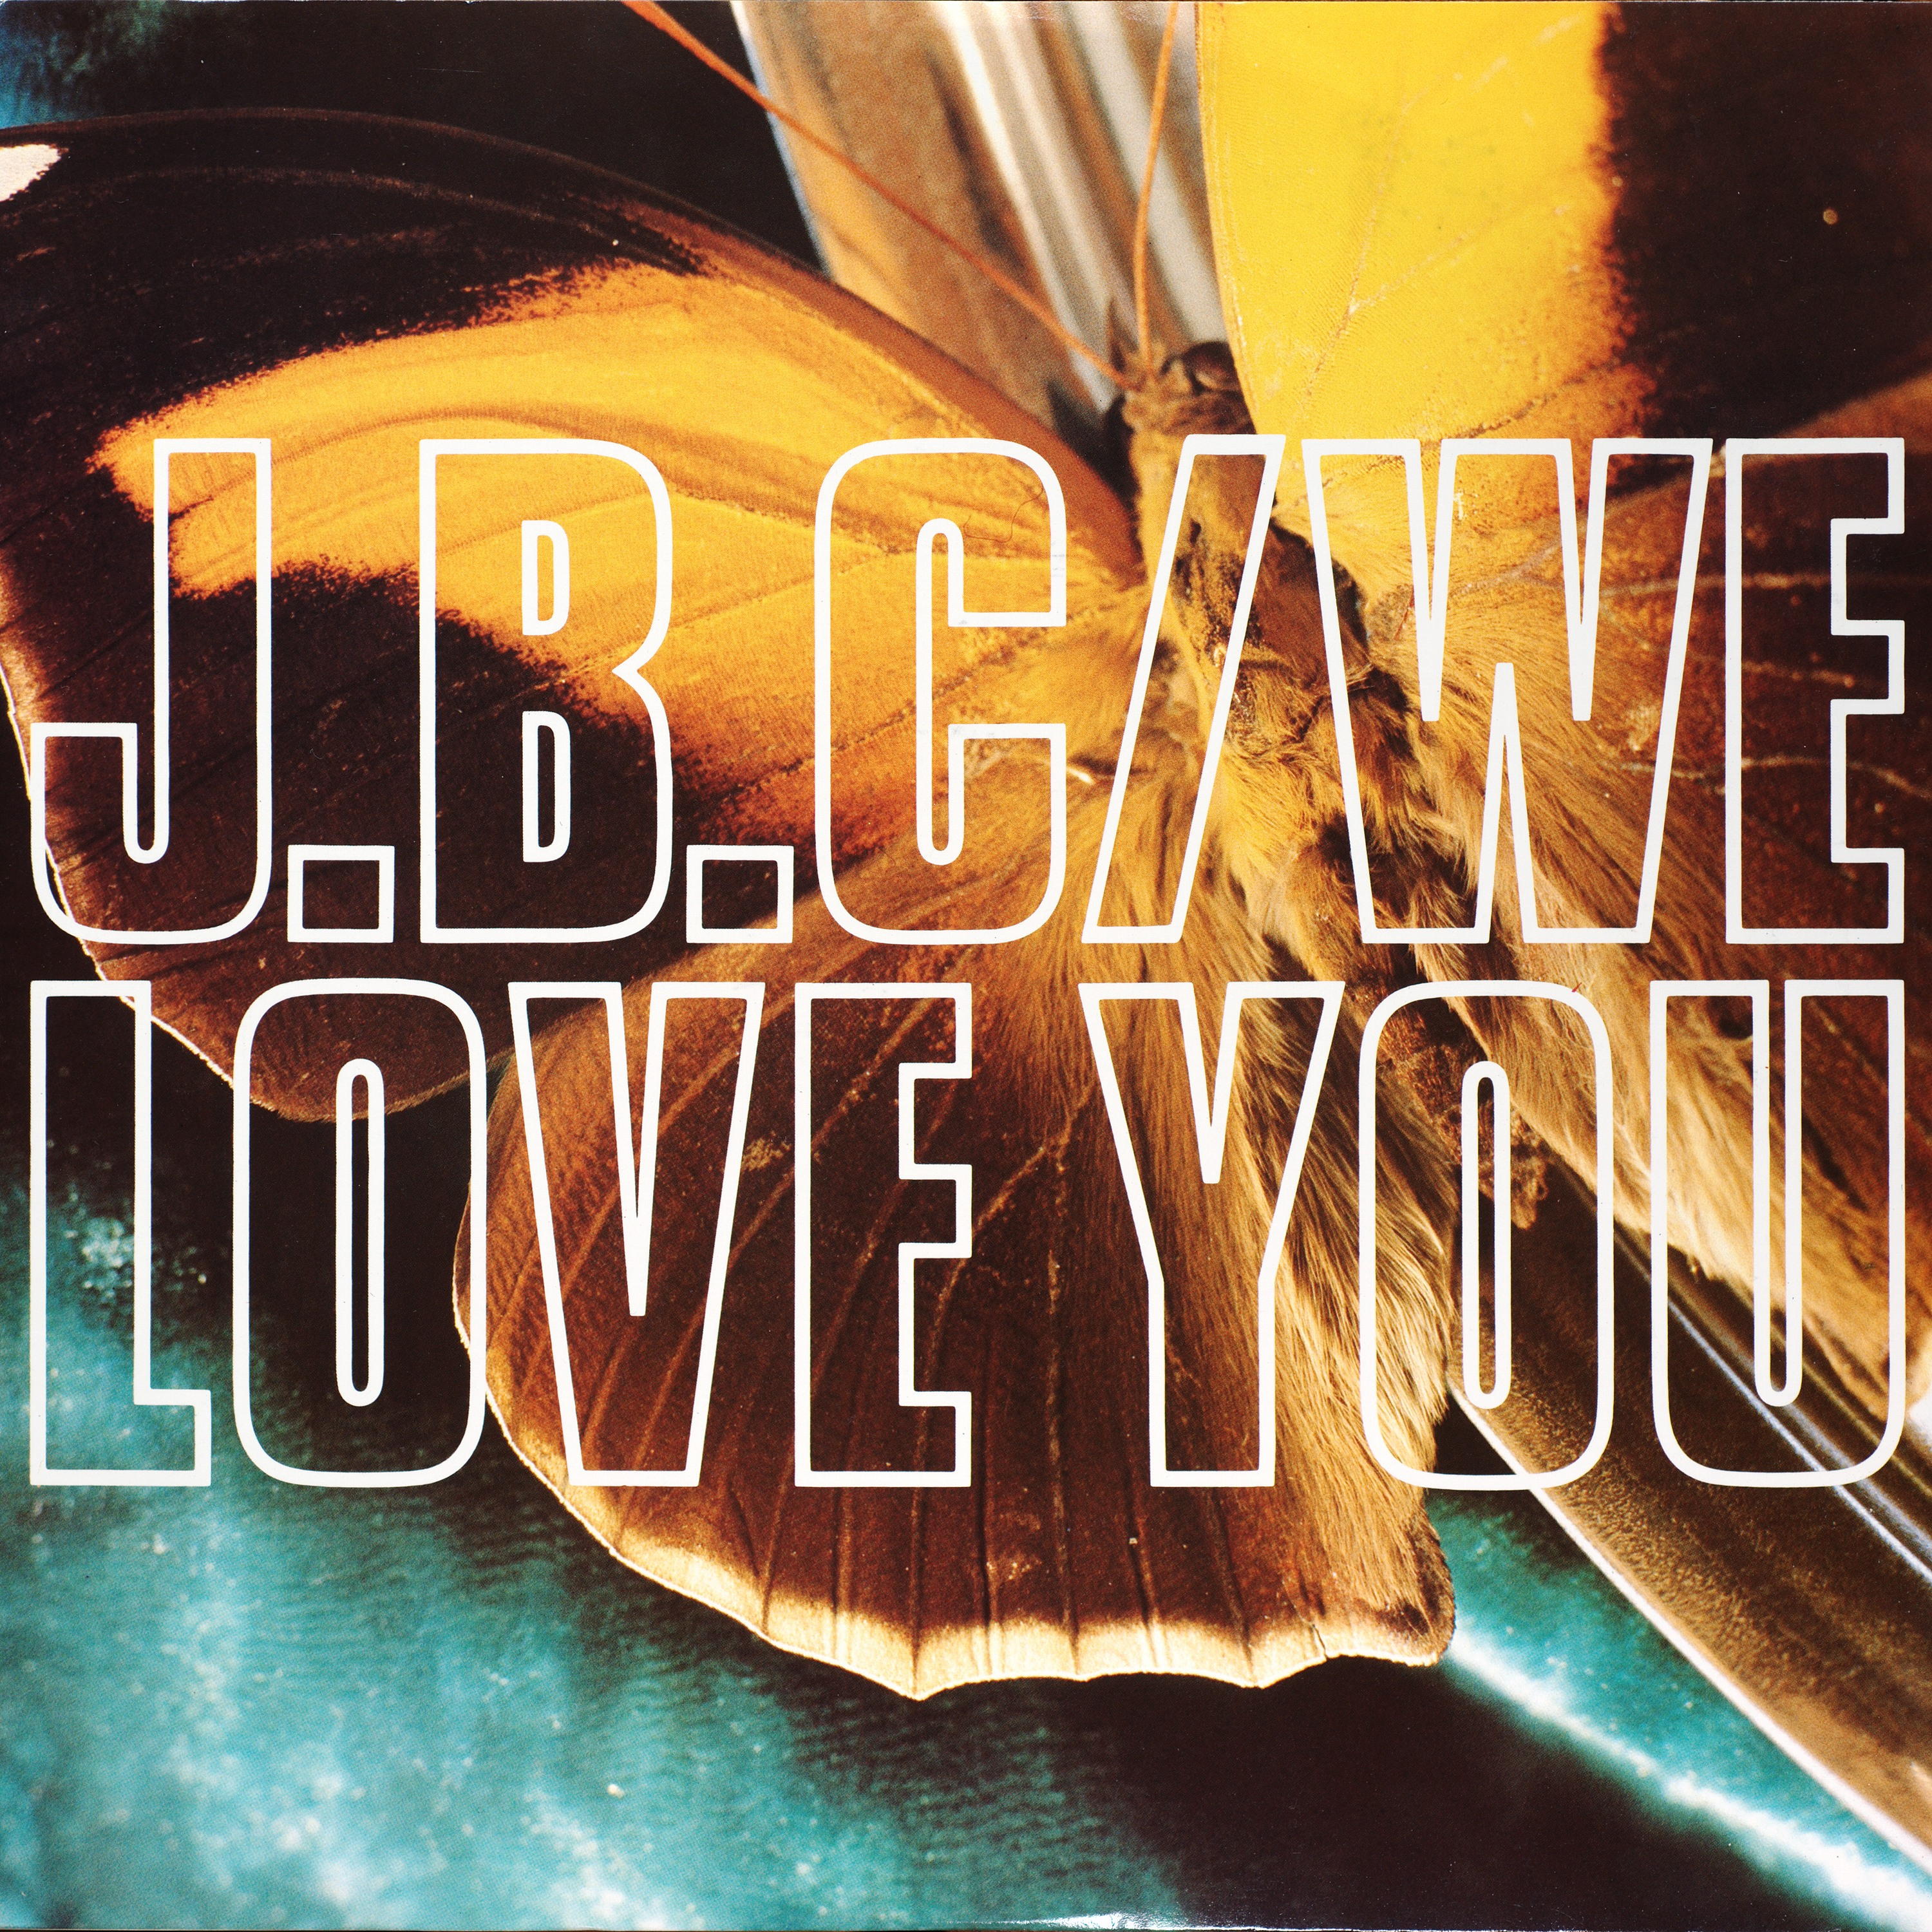 The Jazz Butcher Conspiracy : albums : We Love You